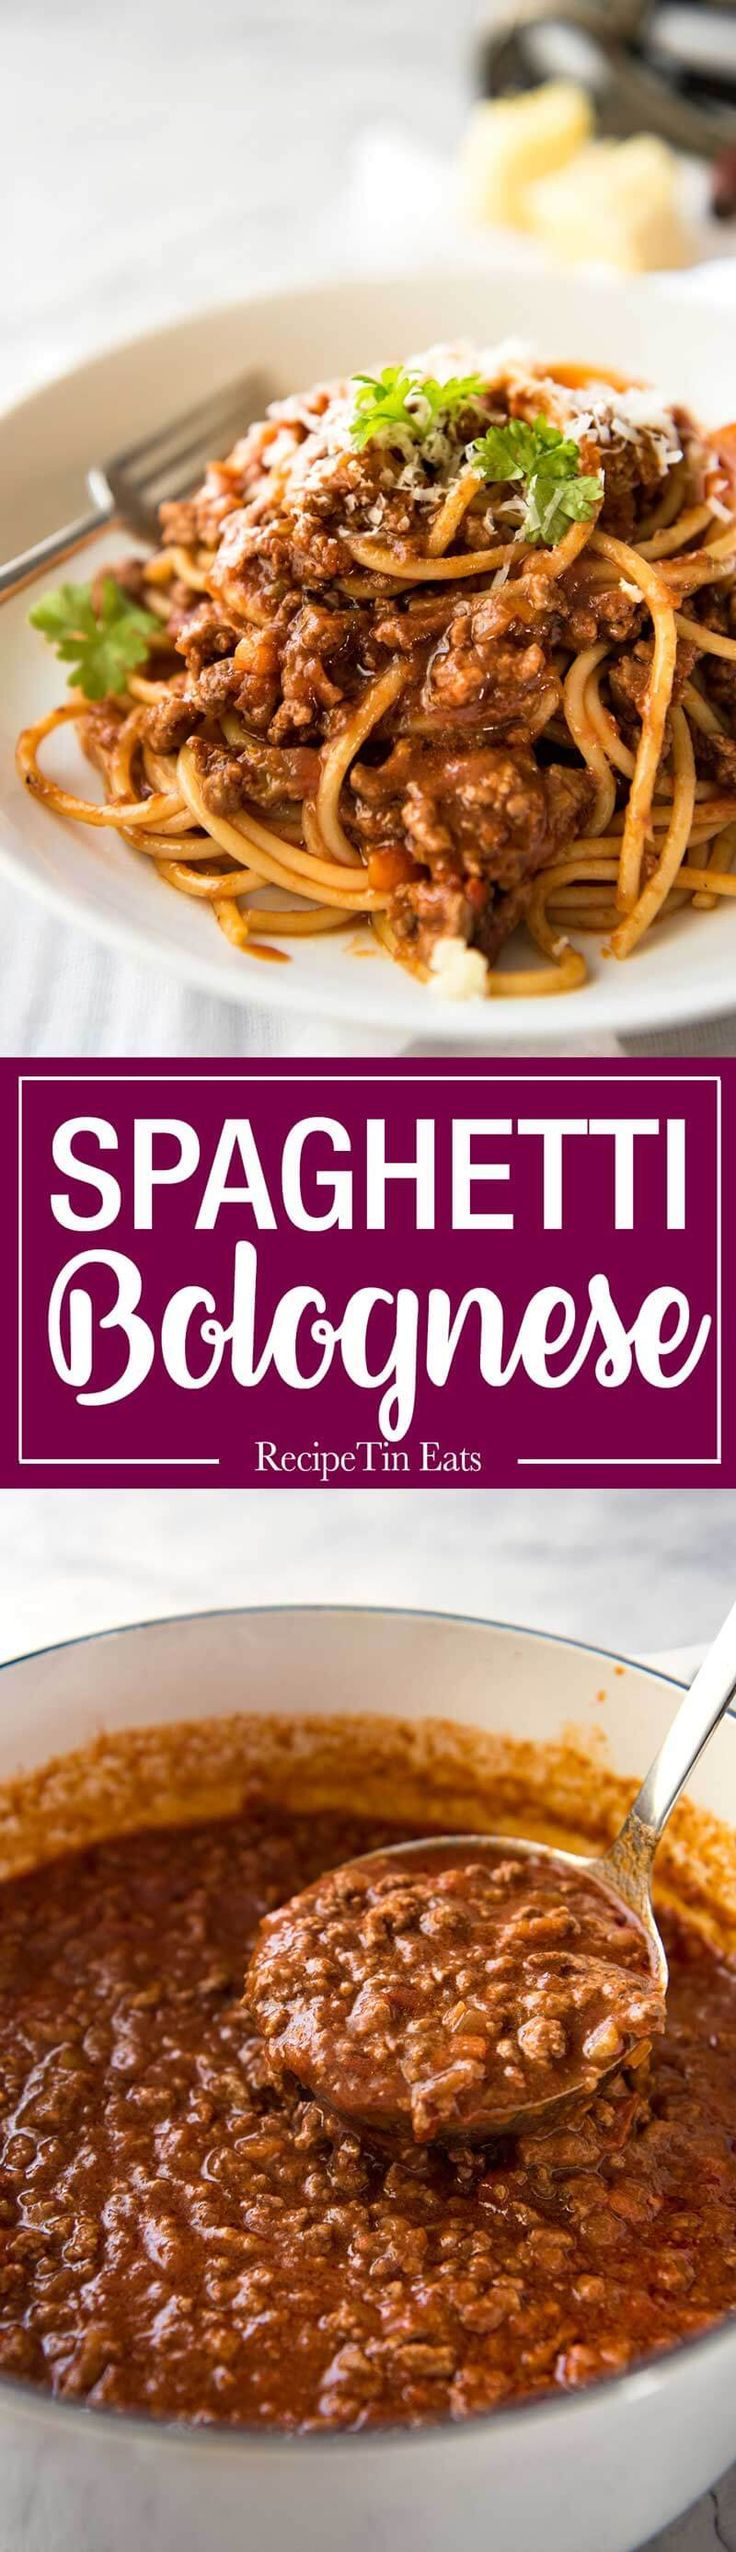 Spaghetti Bolognese - Thick, rich tomato sauce with gorgeous depth of flavour, on the table in 30 minutes!